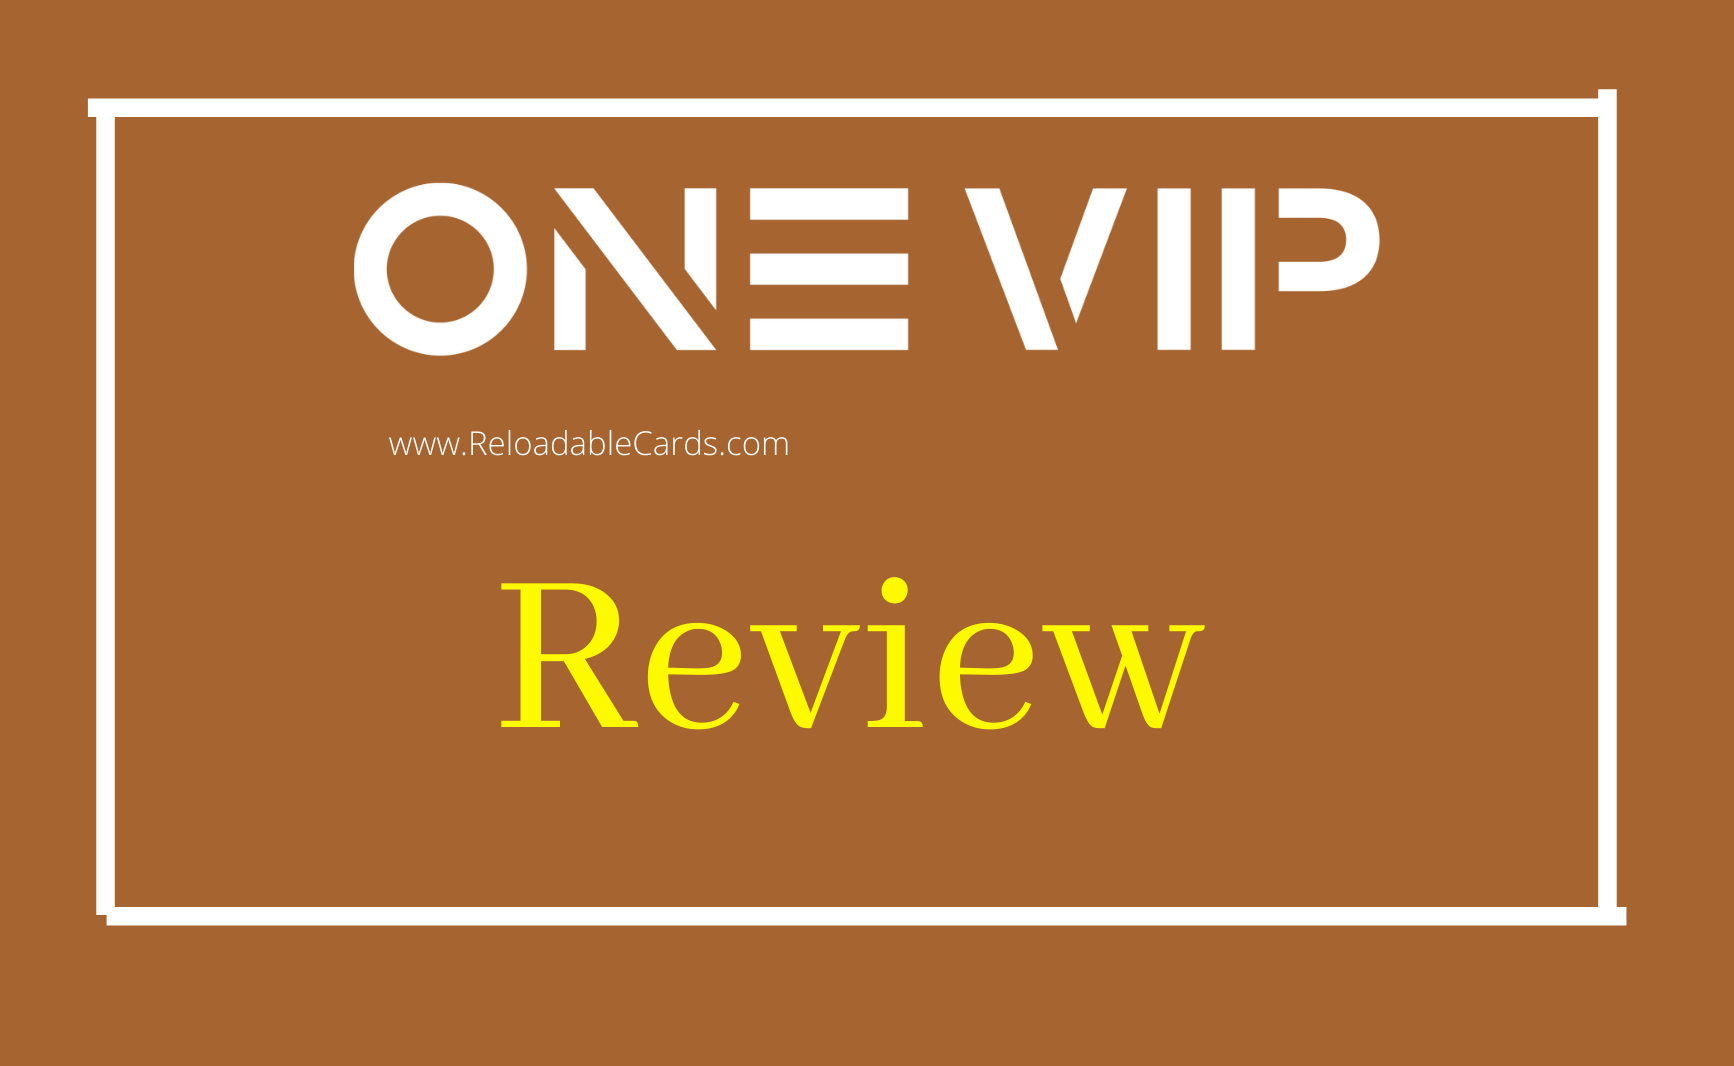 One VIP prepaid card review